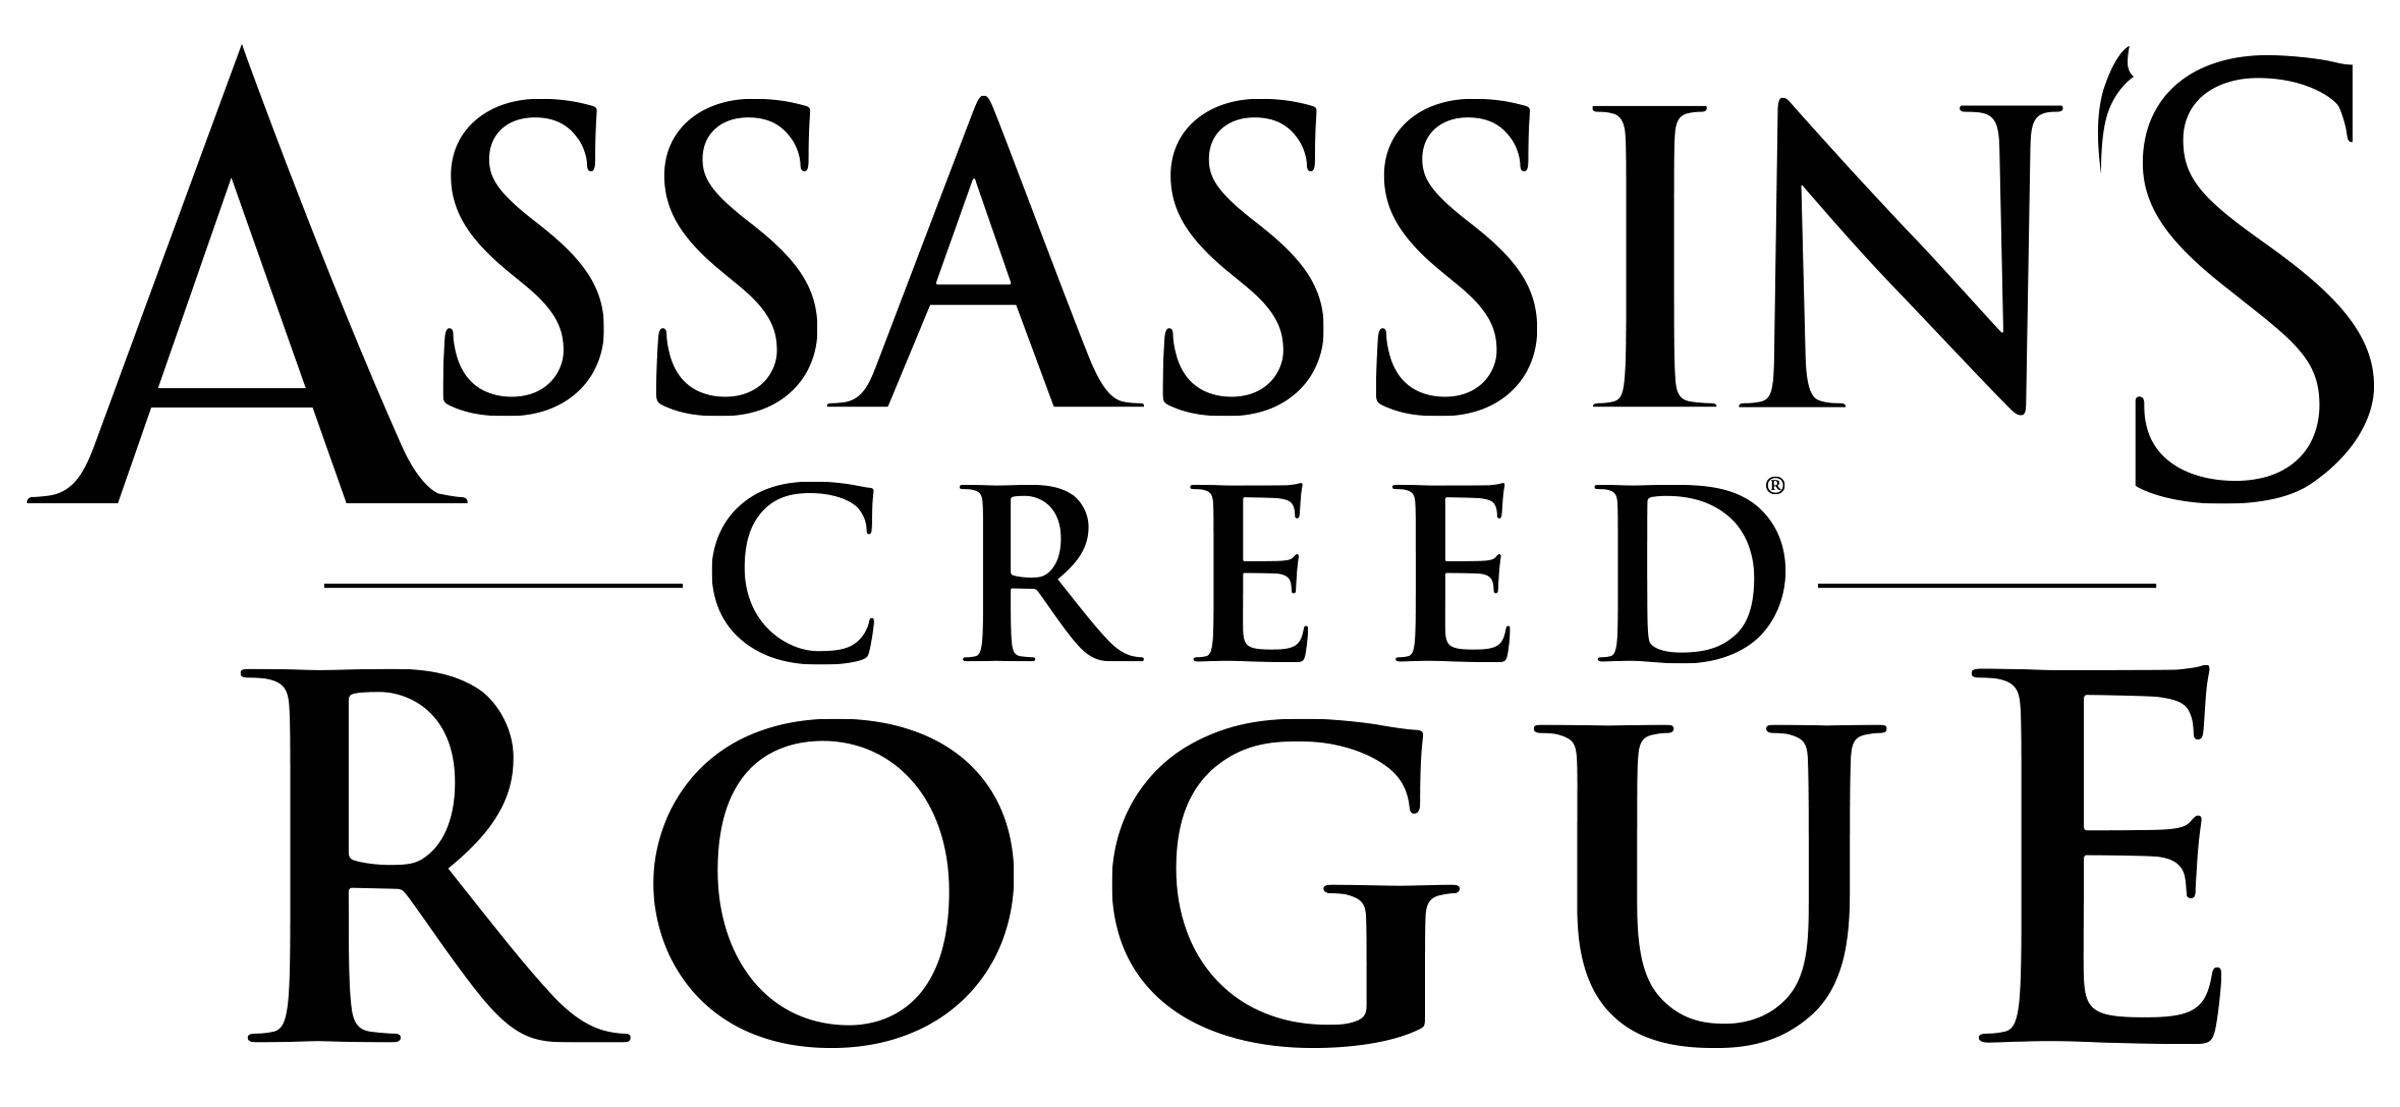 Assassins Creed Rogue Announced With A Trailer